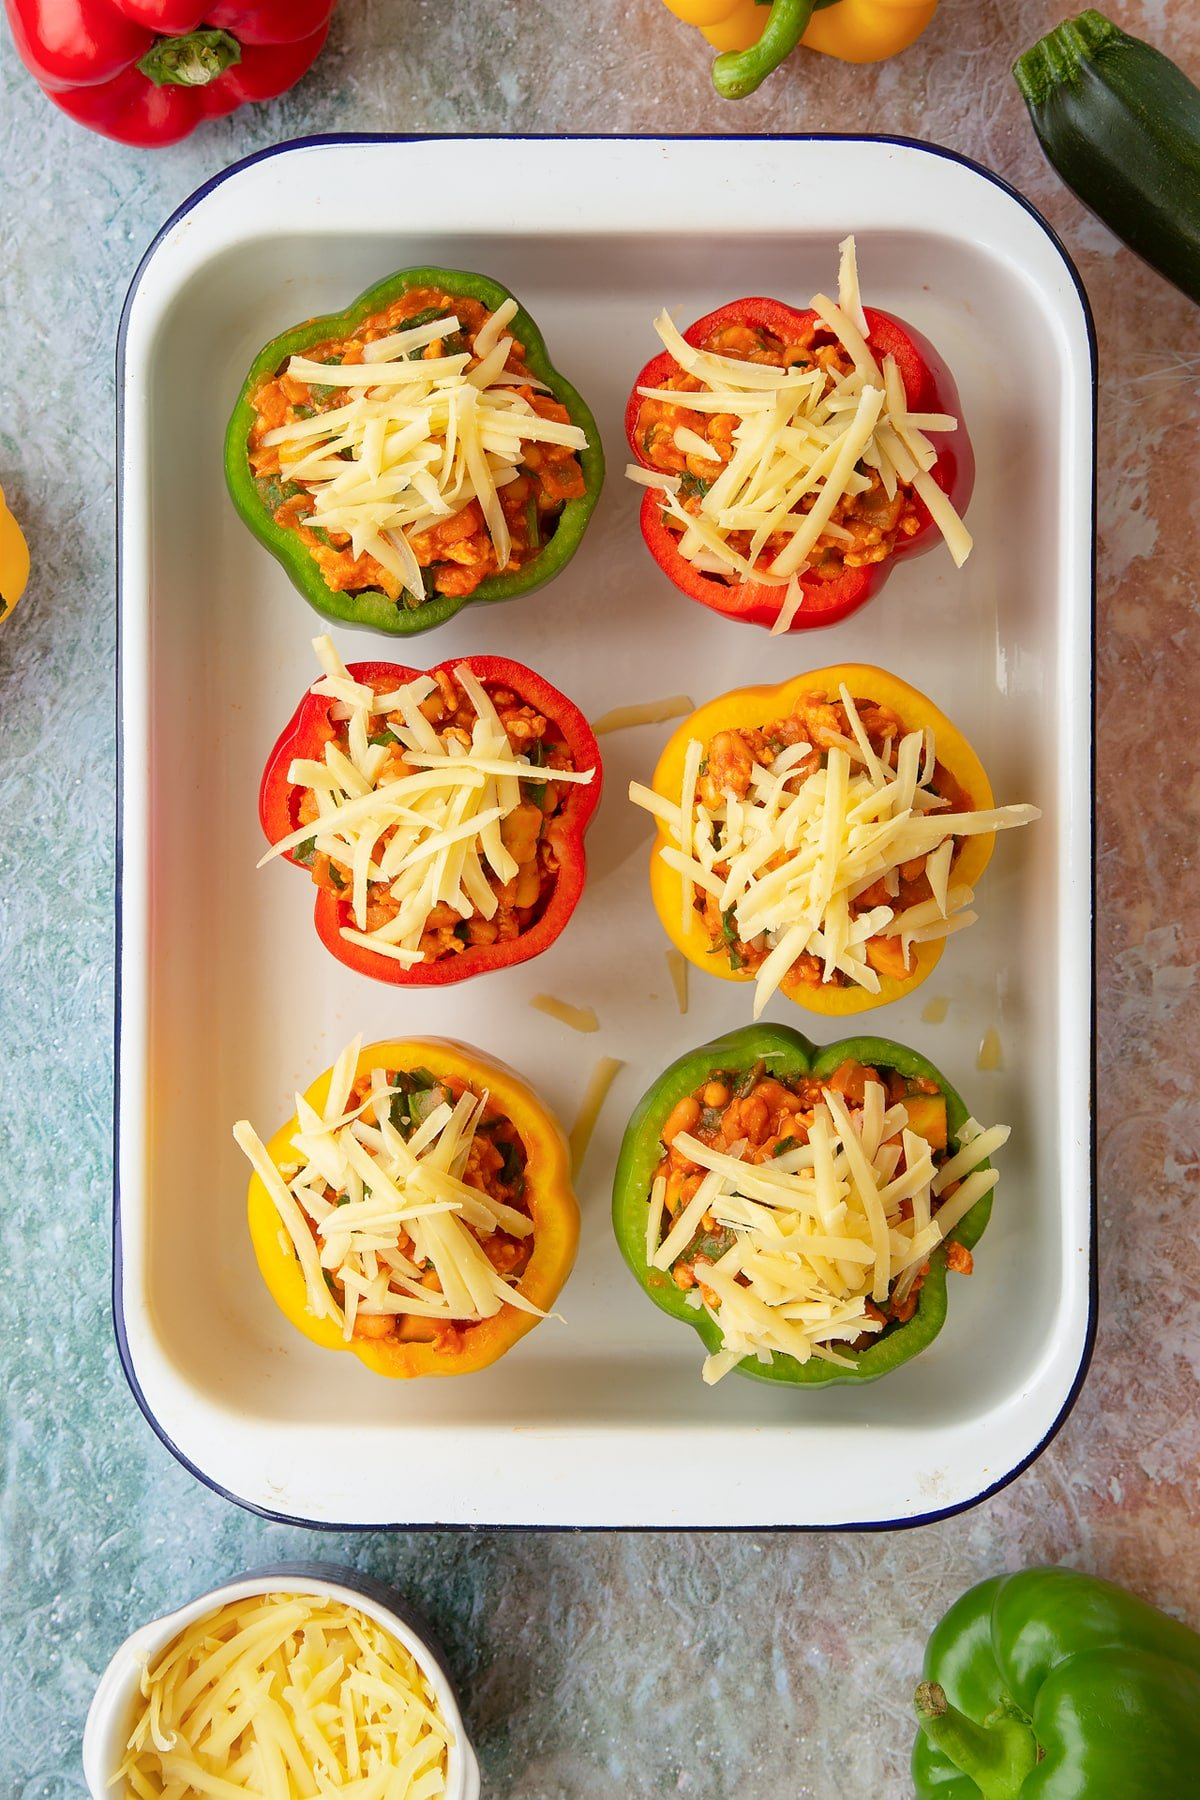 Six red, green and yellow peppers in a white roasting tray. The peppers are filled with the bean and turkey mix and topped with grated cheese. Ingredients to make baked bean stuffed peppers surround the tray.